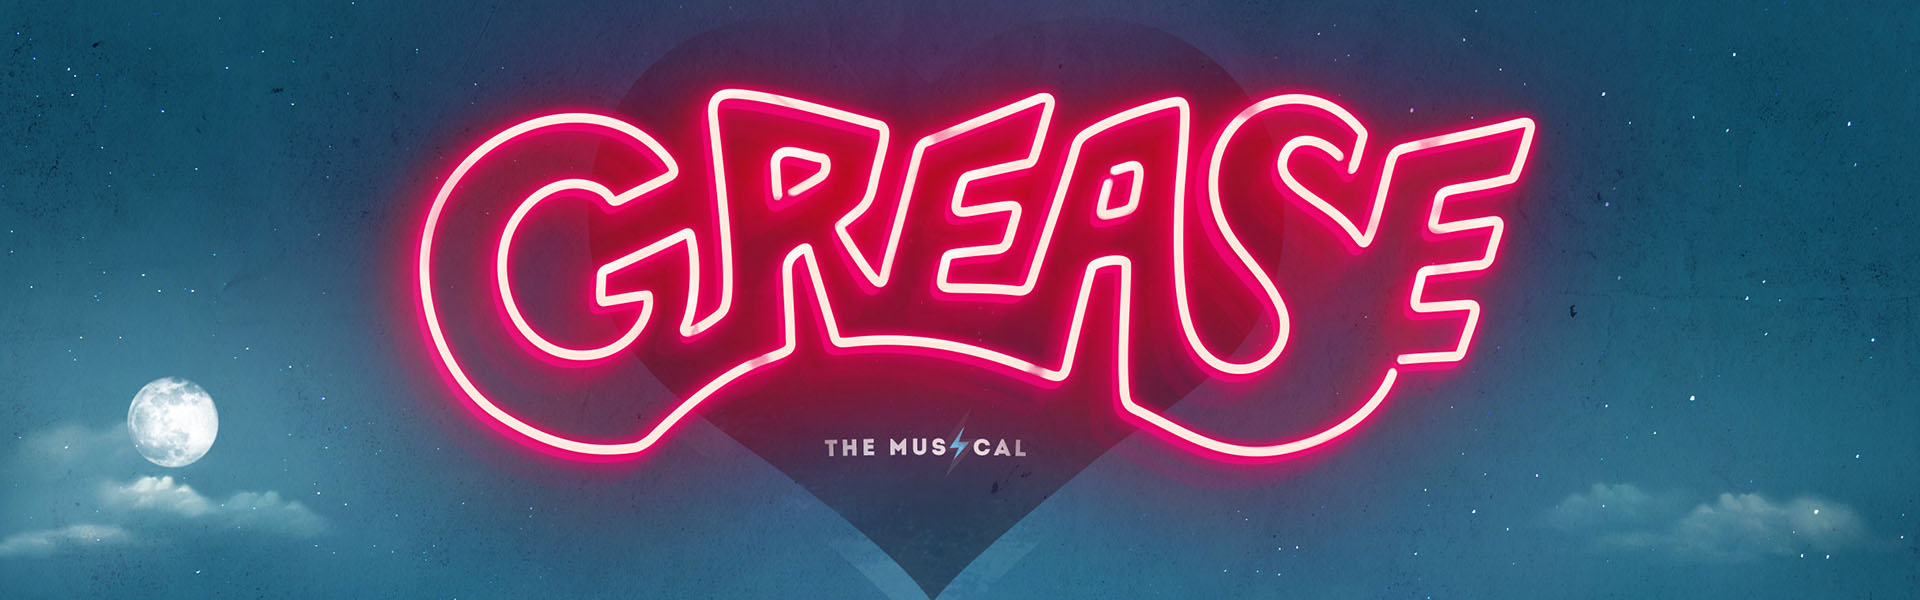 Logo de Grease